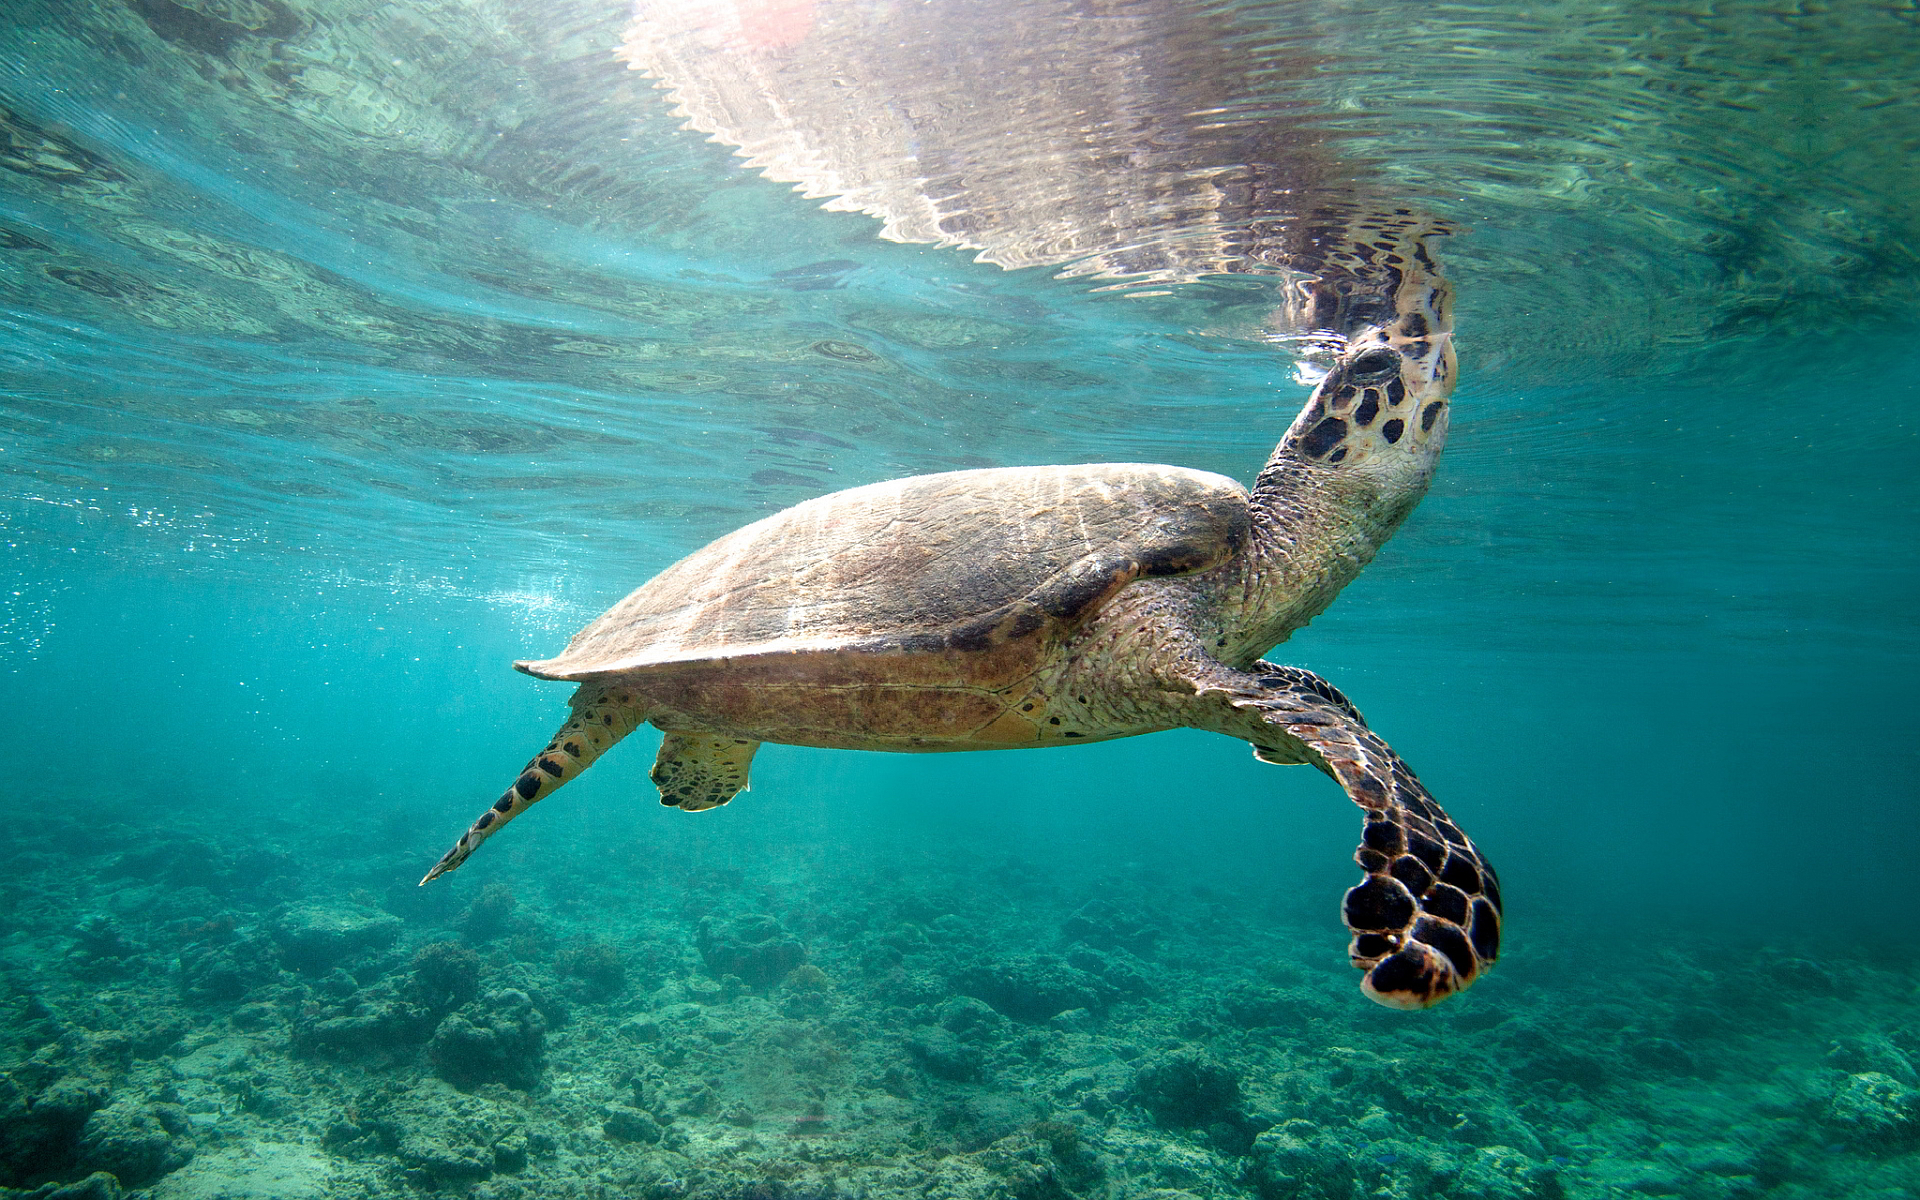 7031747-sea-turtle-underwater.jpg